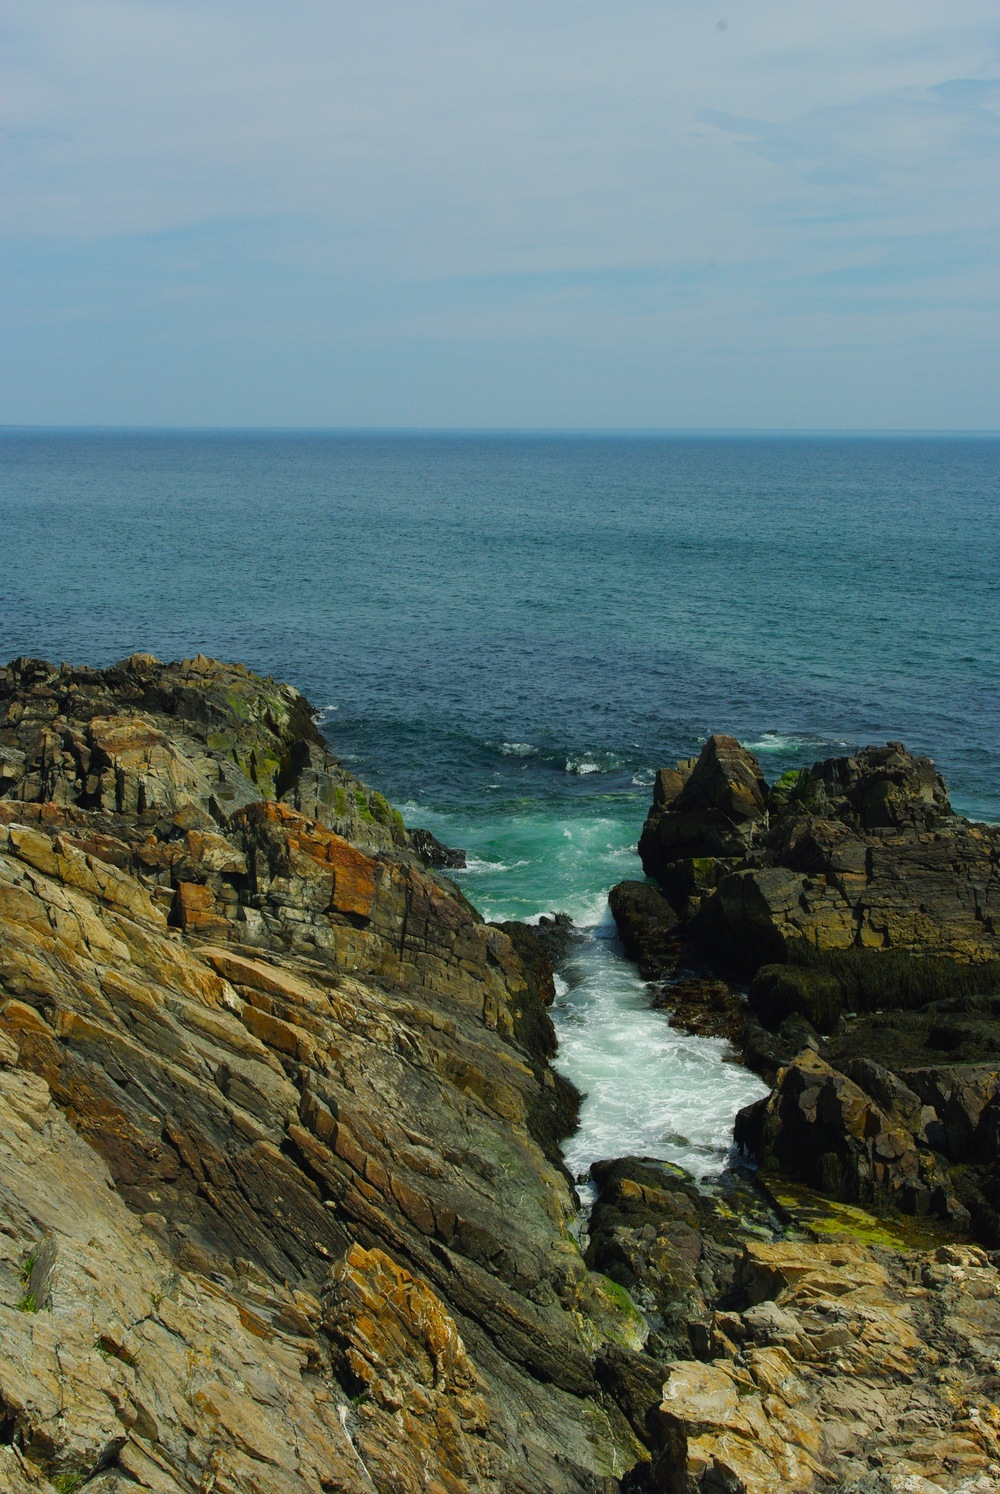 Marginal Way, Ogunquit, Maine